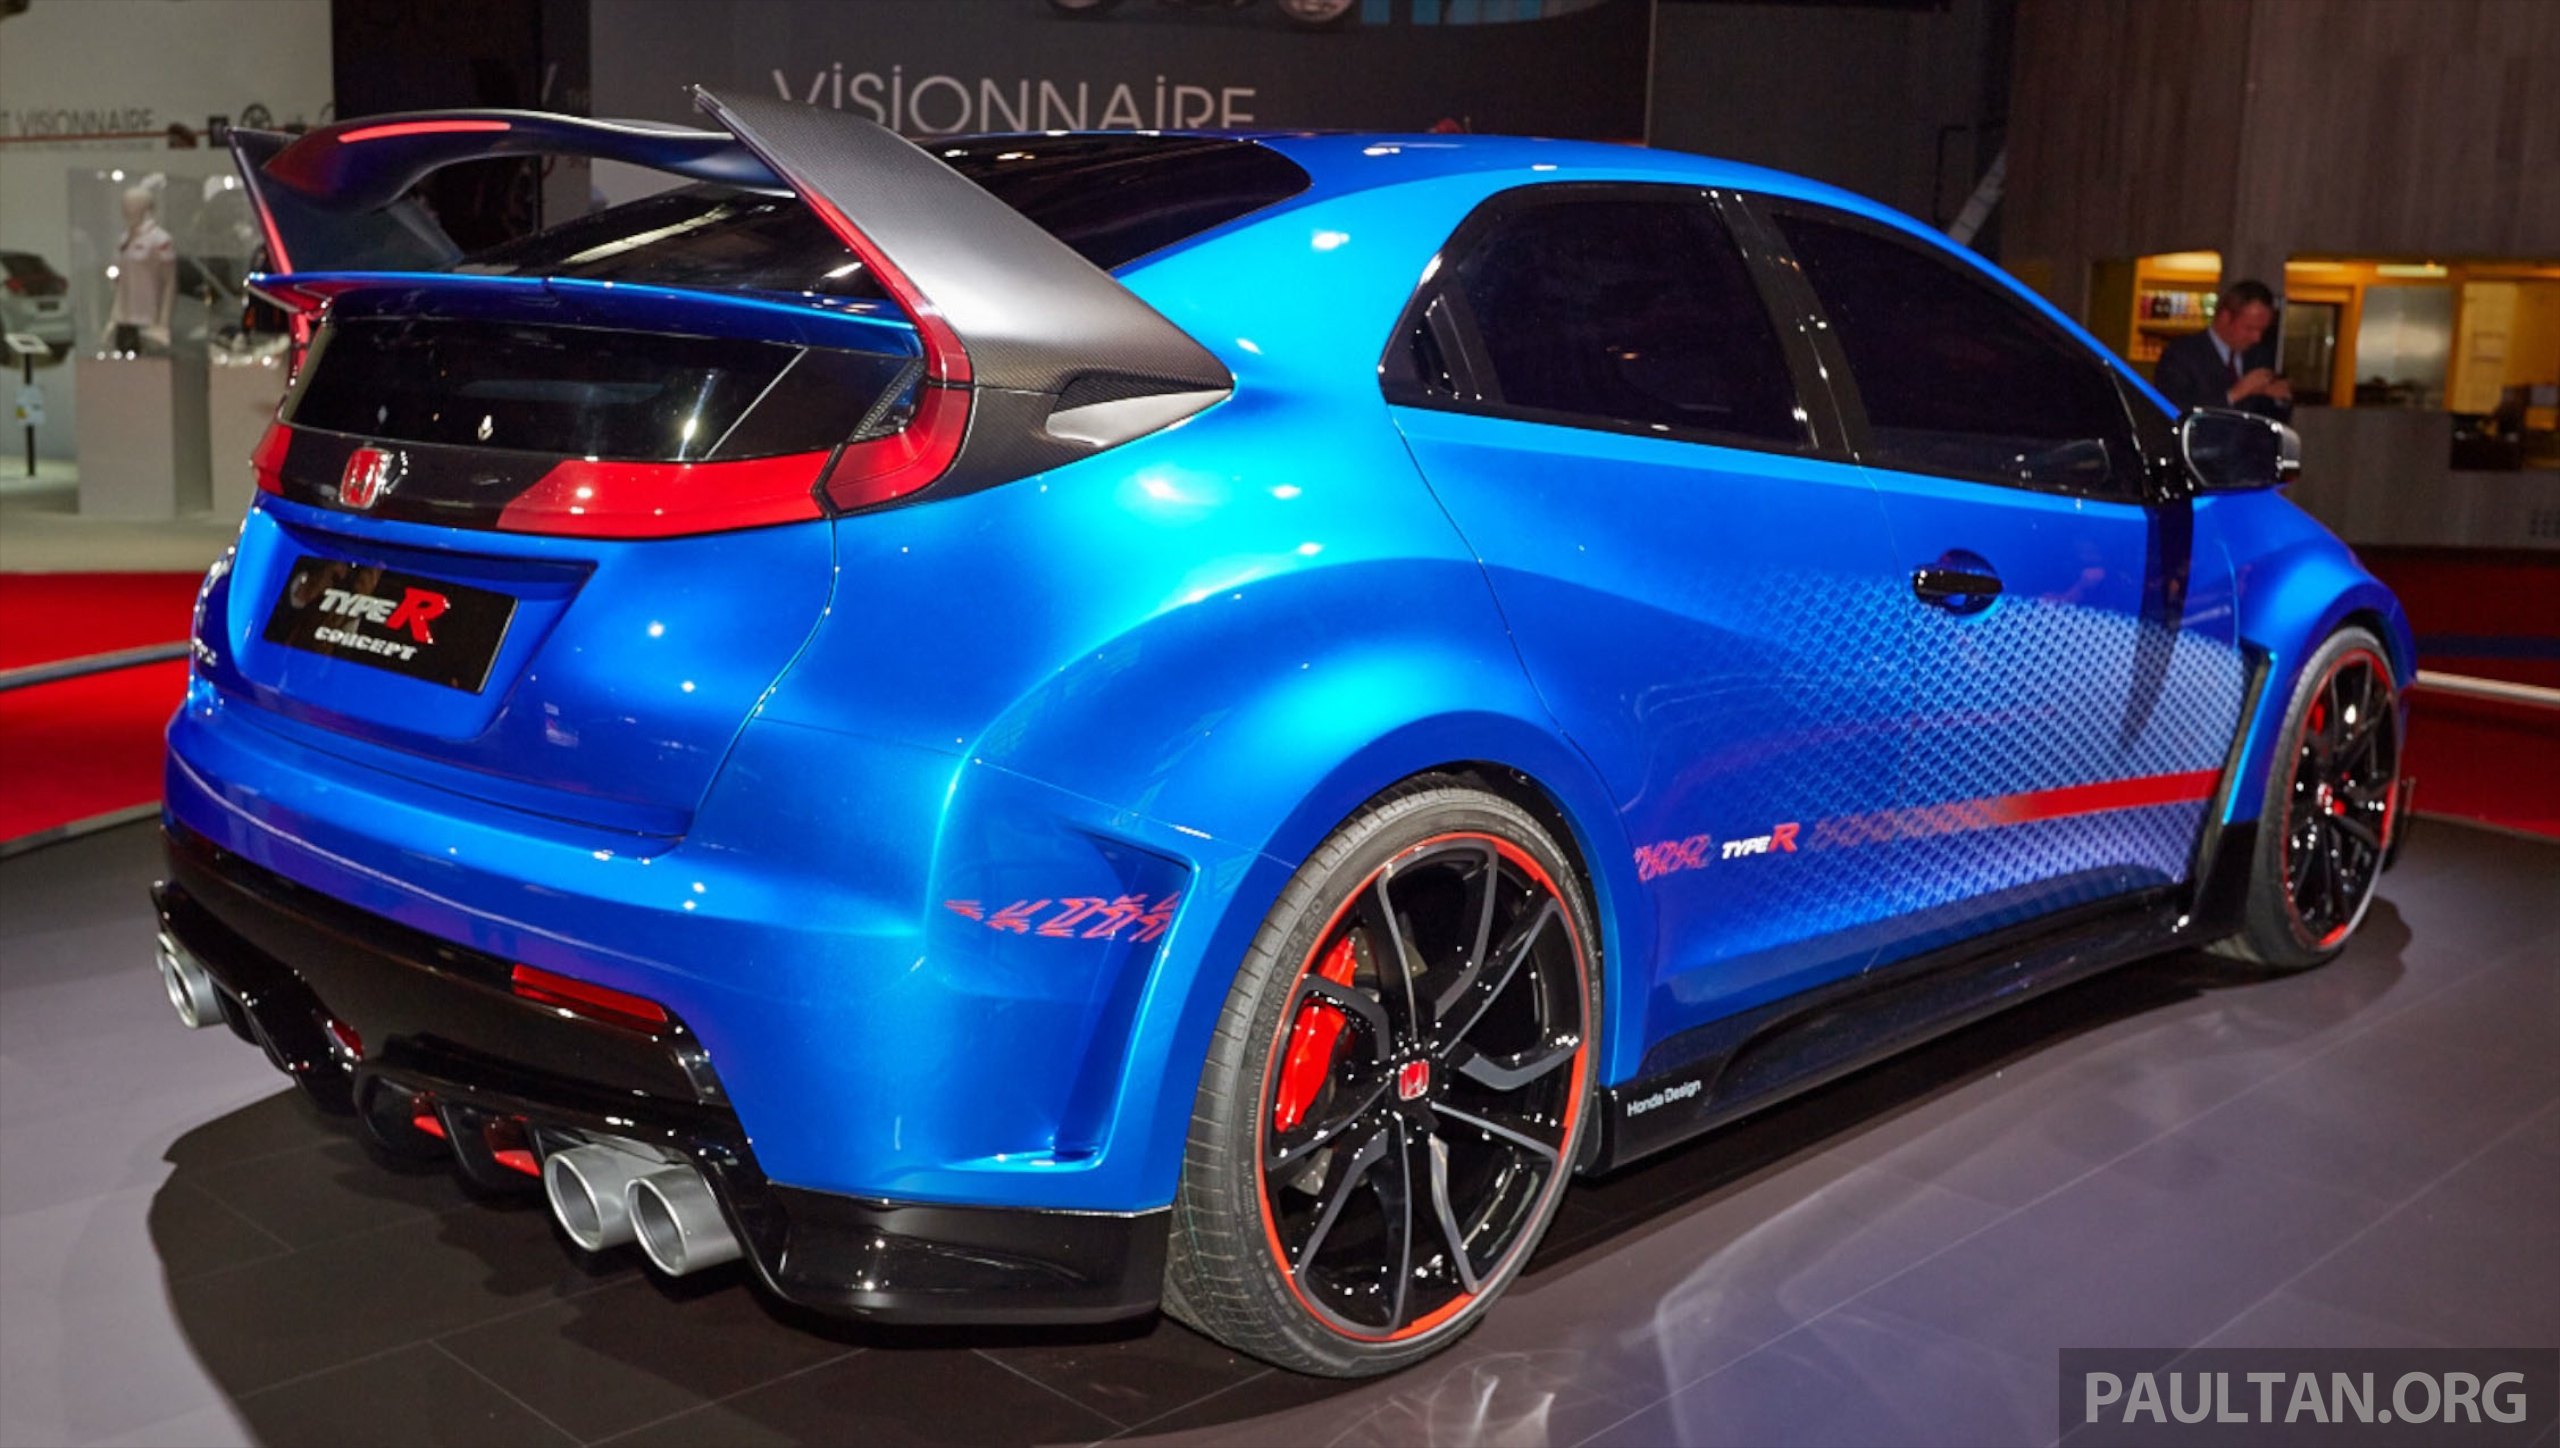 2015 Civic Type R Blue honda civic type r concept: live pictures from ...